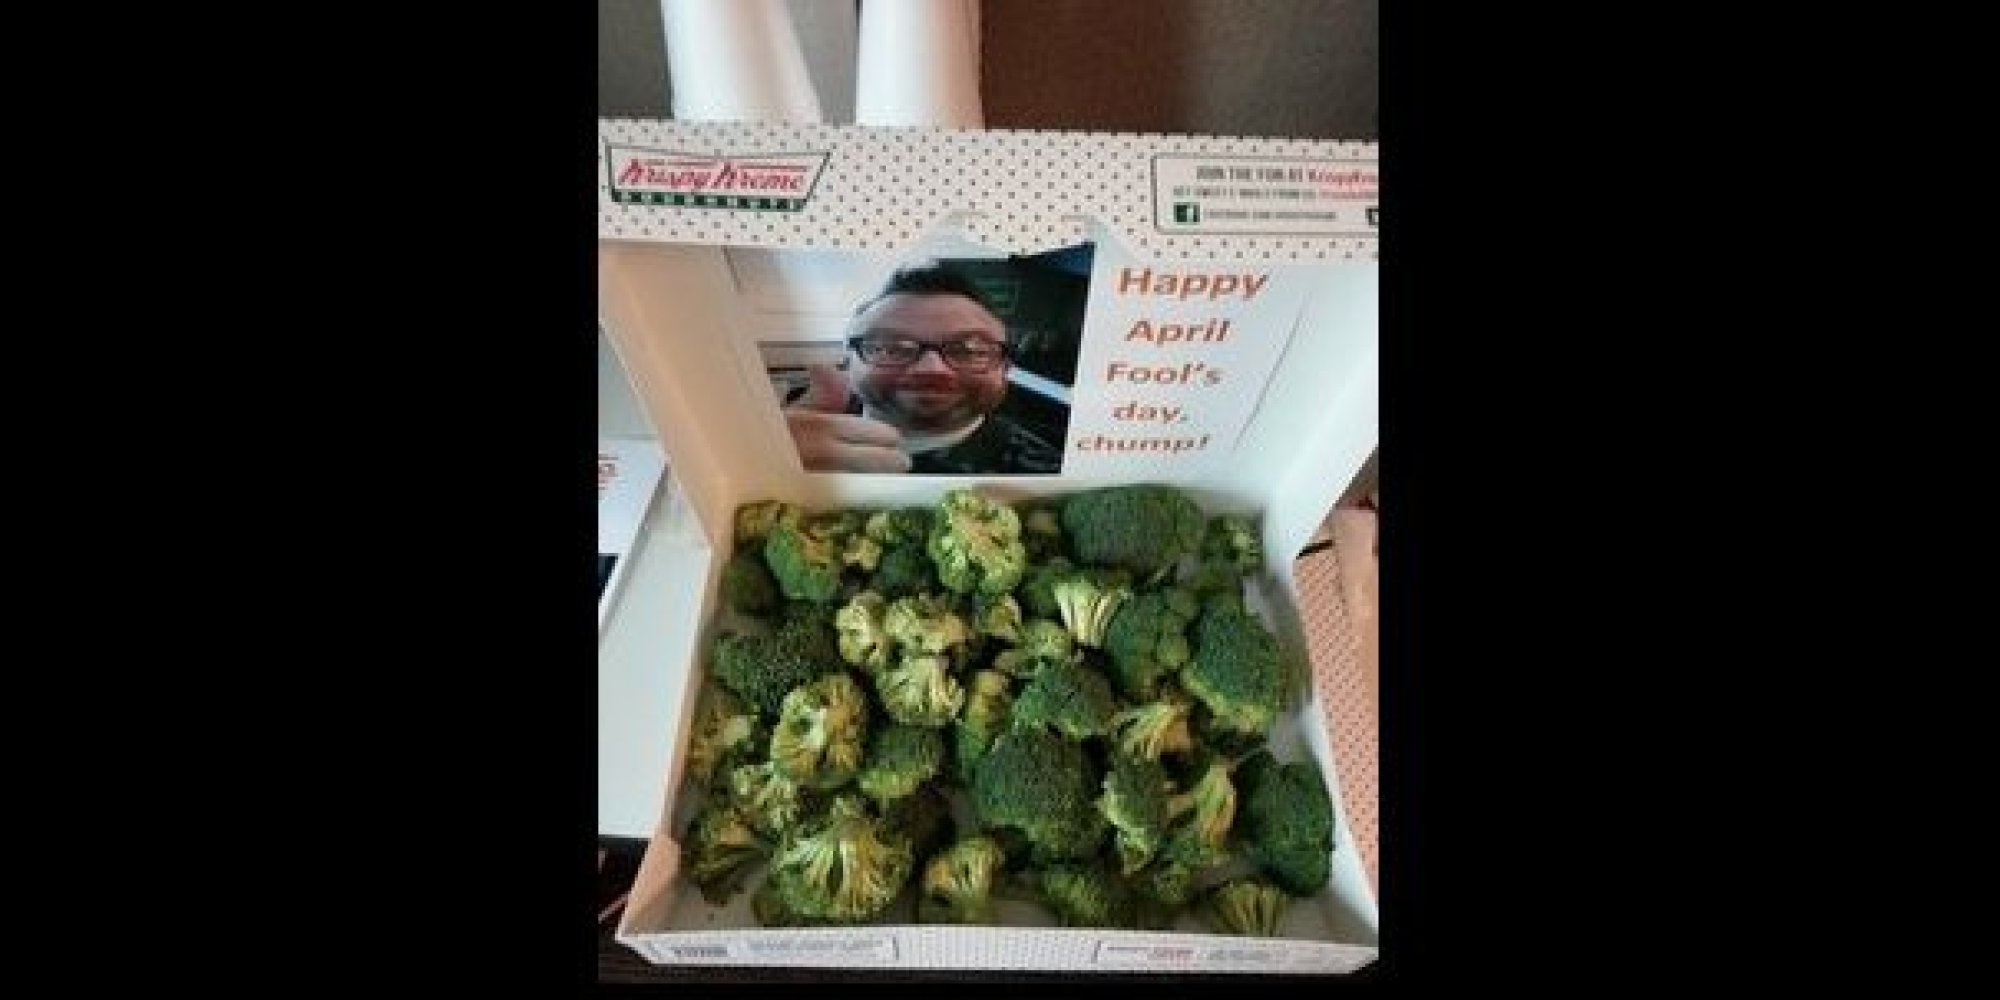 The Funniest April Fools Day Pranks Of 2015 From Around